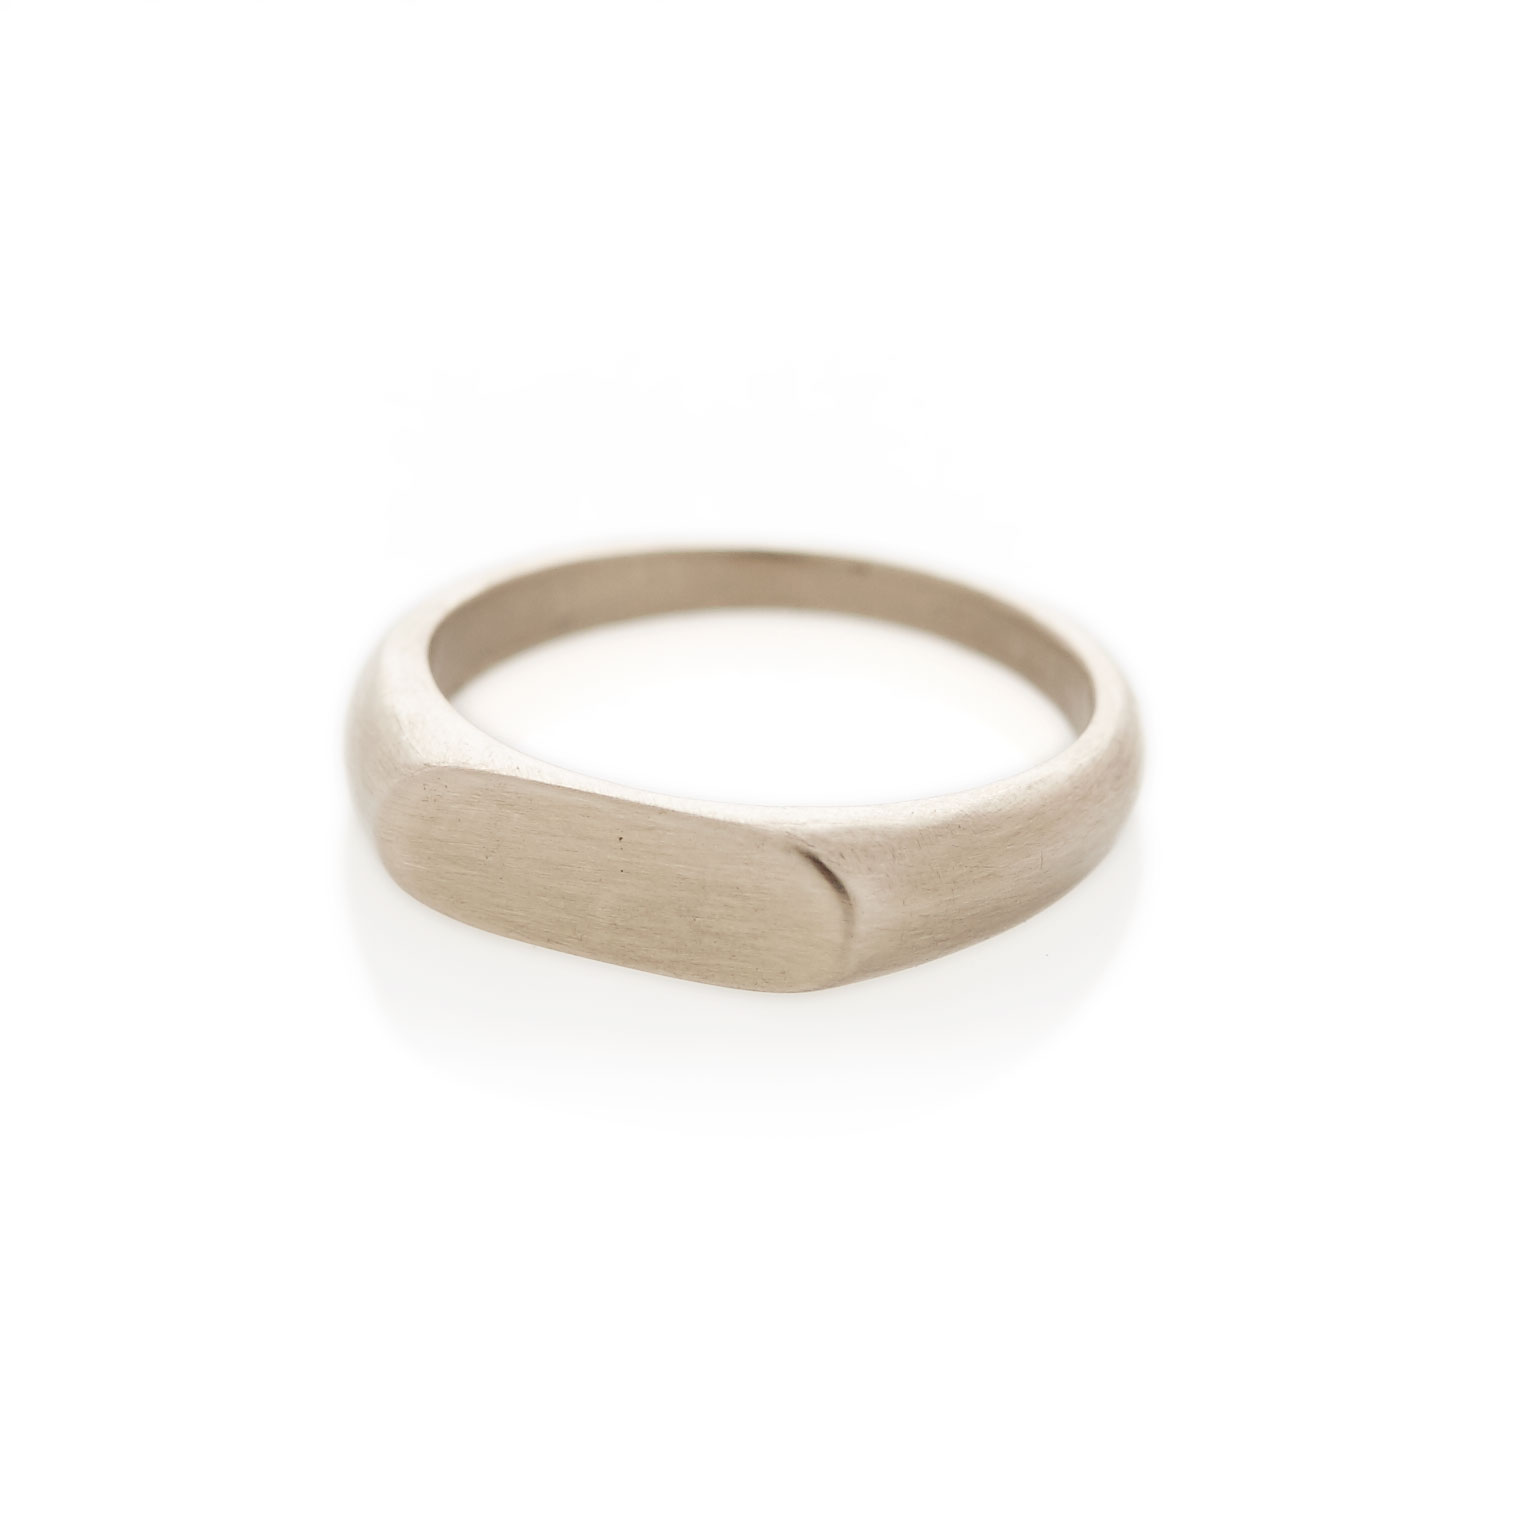 A landscape oval shaped signet ring in solid 9ct white gold. The face size is approximately 5.5mm x 15mm. Available with either a brushed or polished finish.